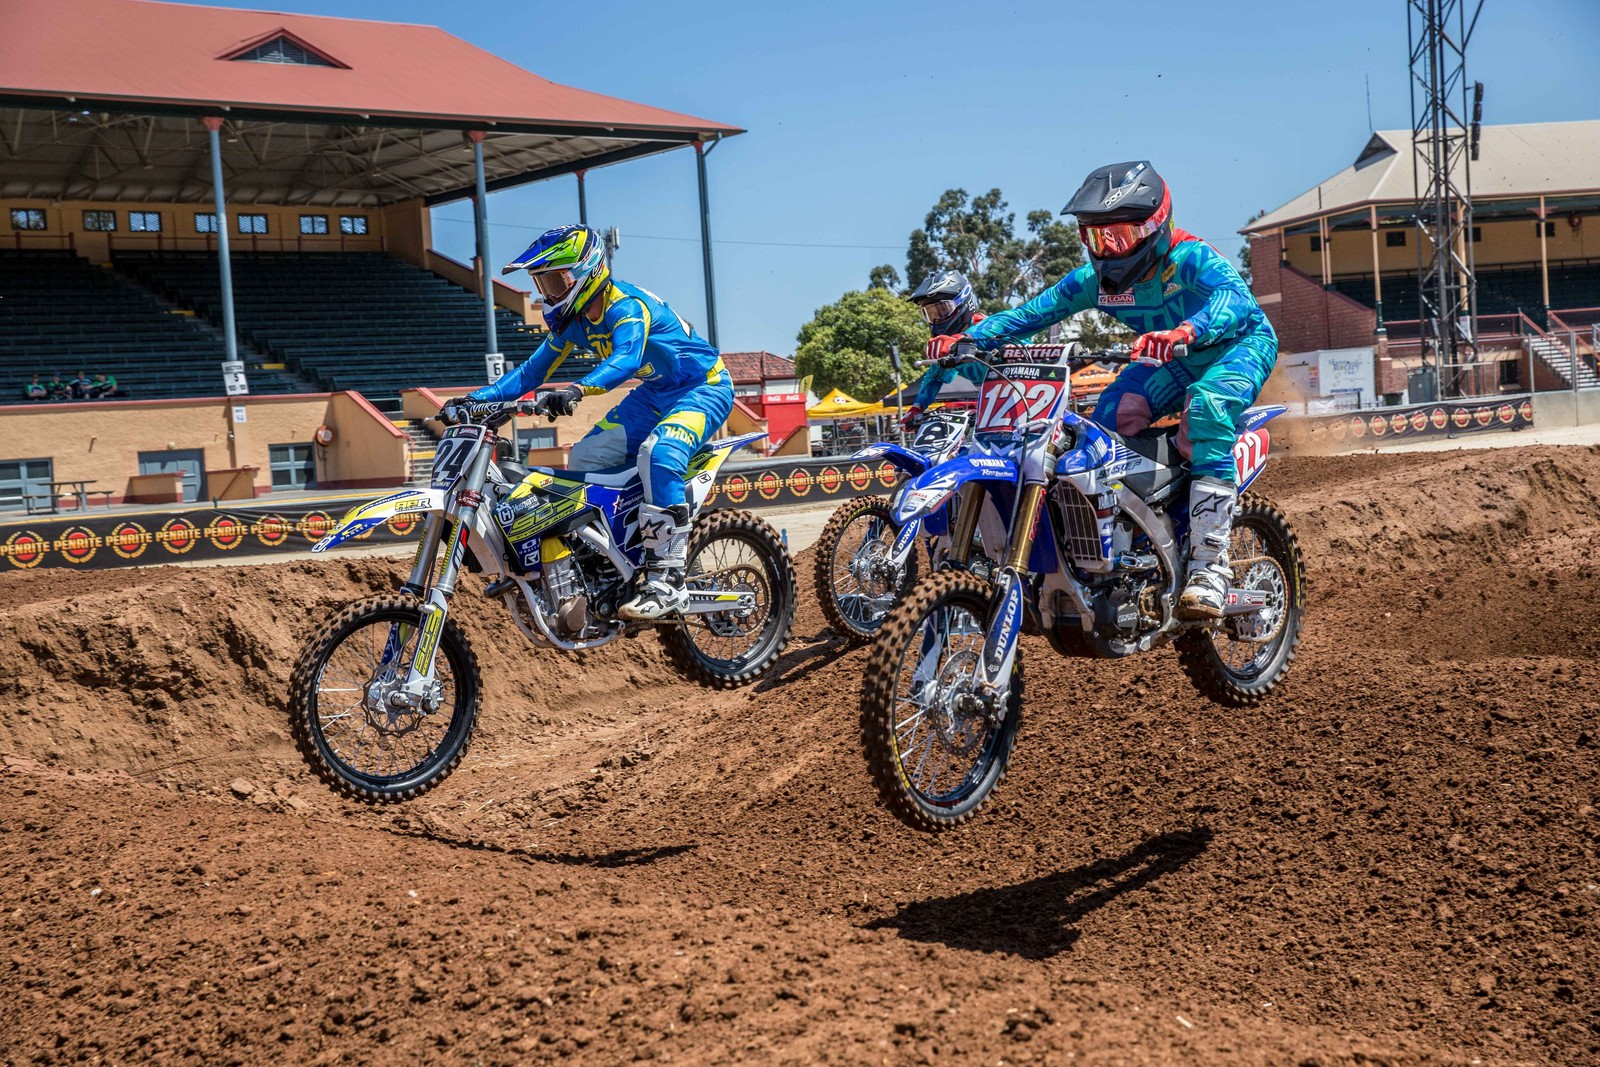 Dan Reardon and Brett Metcalfe - Photo Blast: Australian Supercross Championship from Adelaide - Motocross Pictures - Vital MX